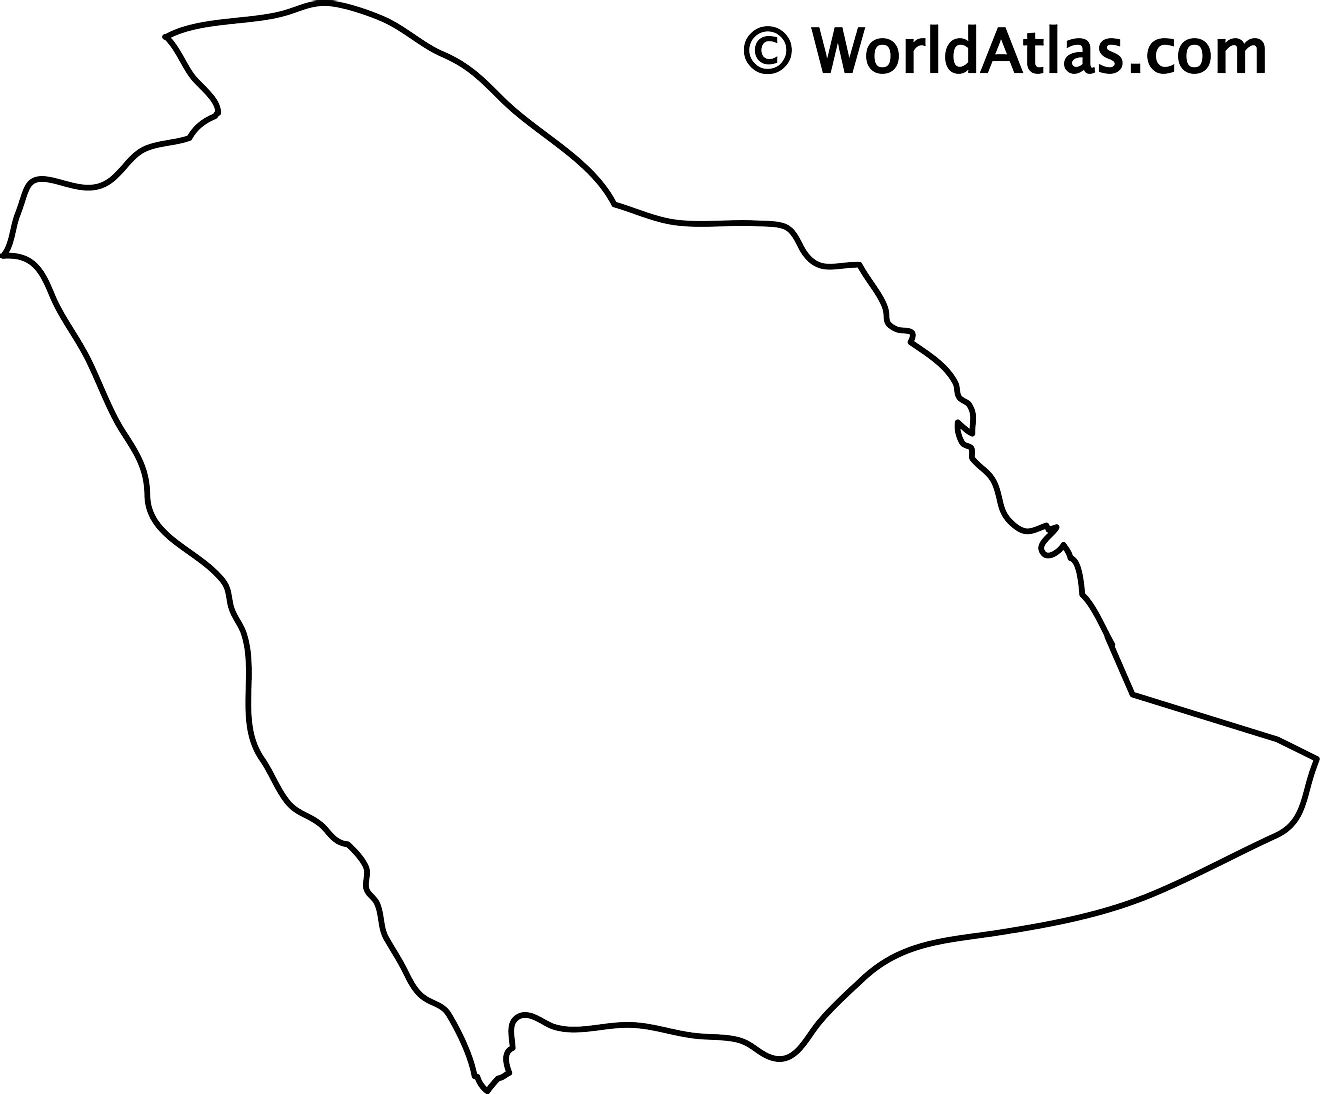 Outline Map of Saudi Arabia